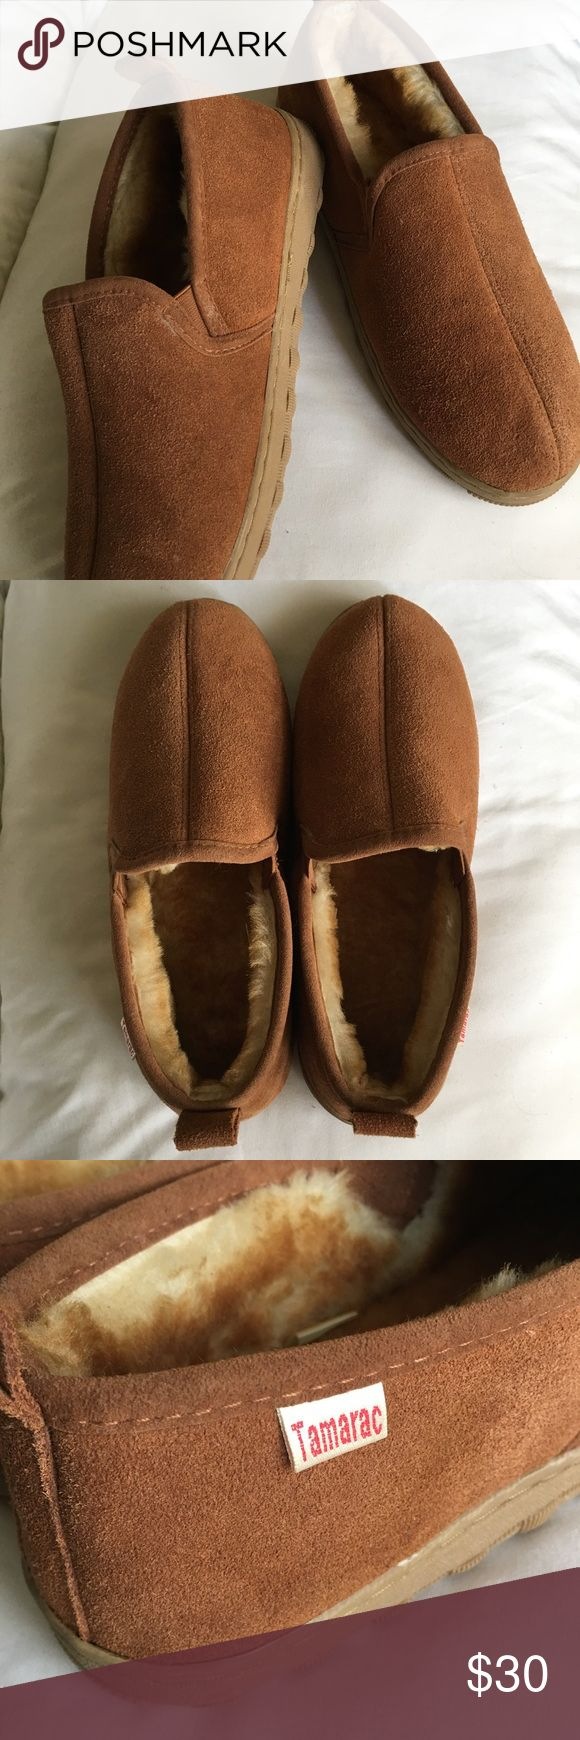 NWOT Mens Tamarac Slip on Shoes Like new/barely worn, very comfortable mens shoe. Made with Genuine leather, shearling linings & a rubber sole. No trades 🚫 No paypal ☺ Tamarac Shoes Loafers & Slip-Ons